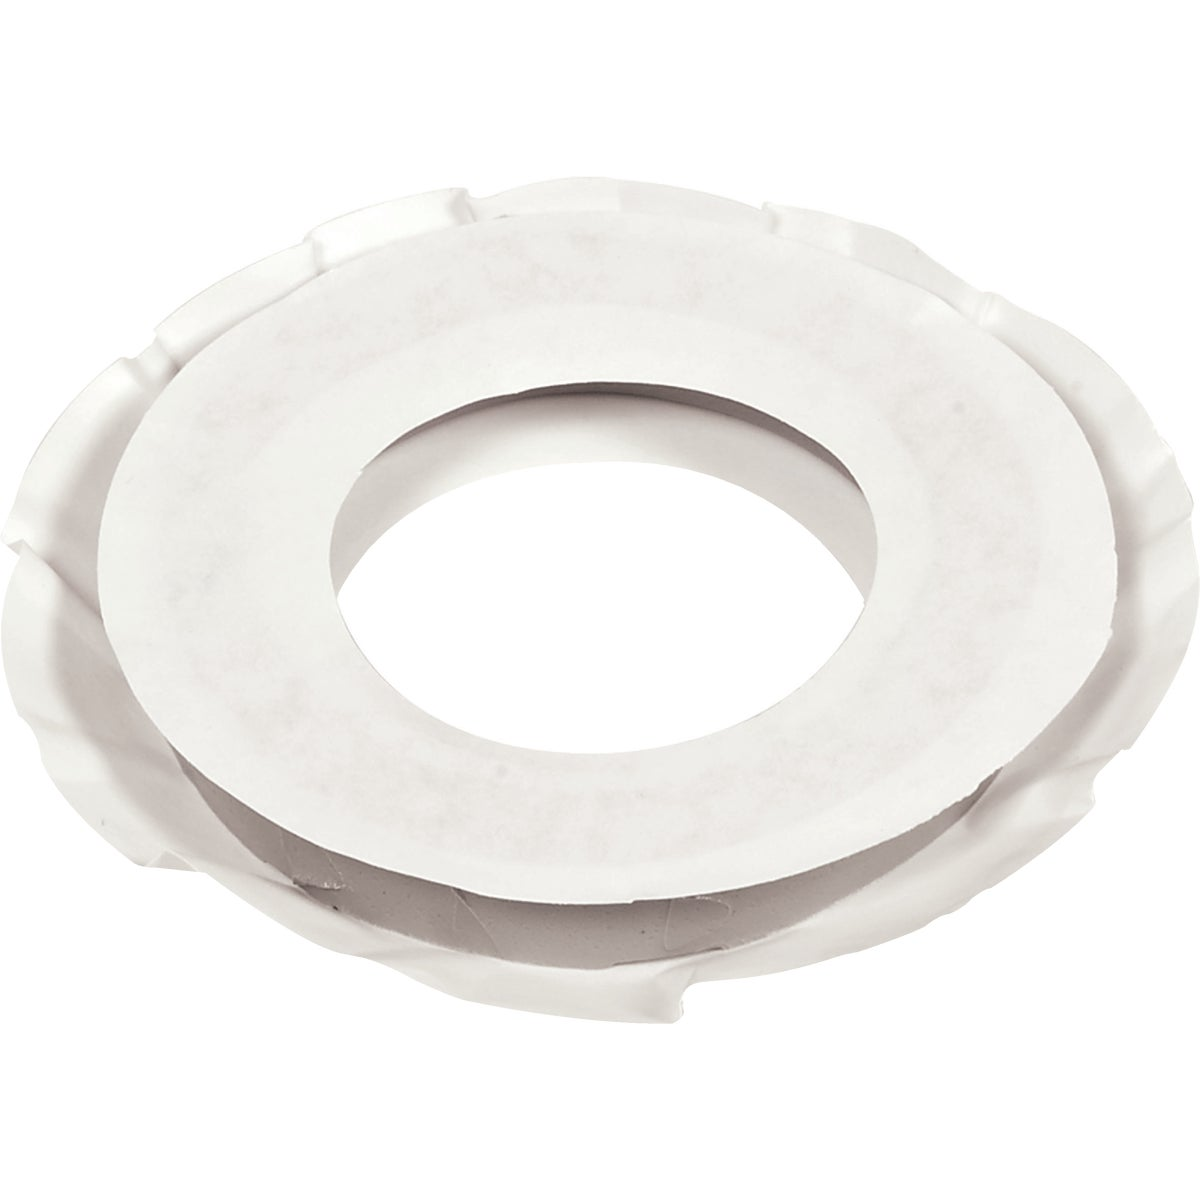 SEALANT RING - 2602 by Fluidmaster Inc